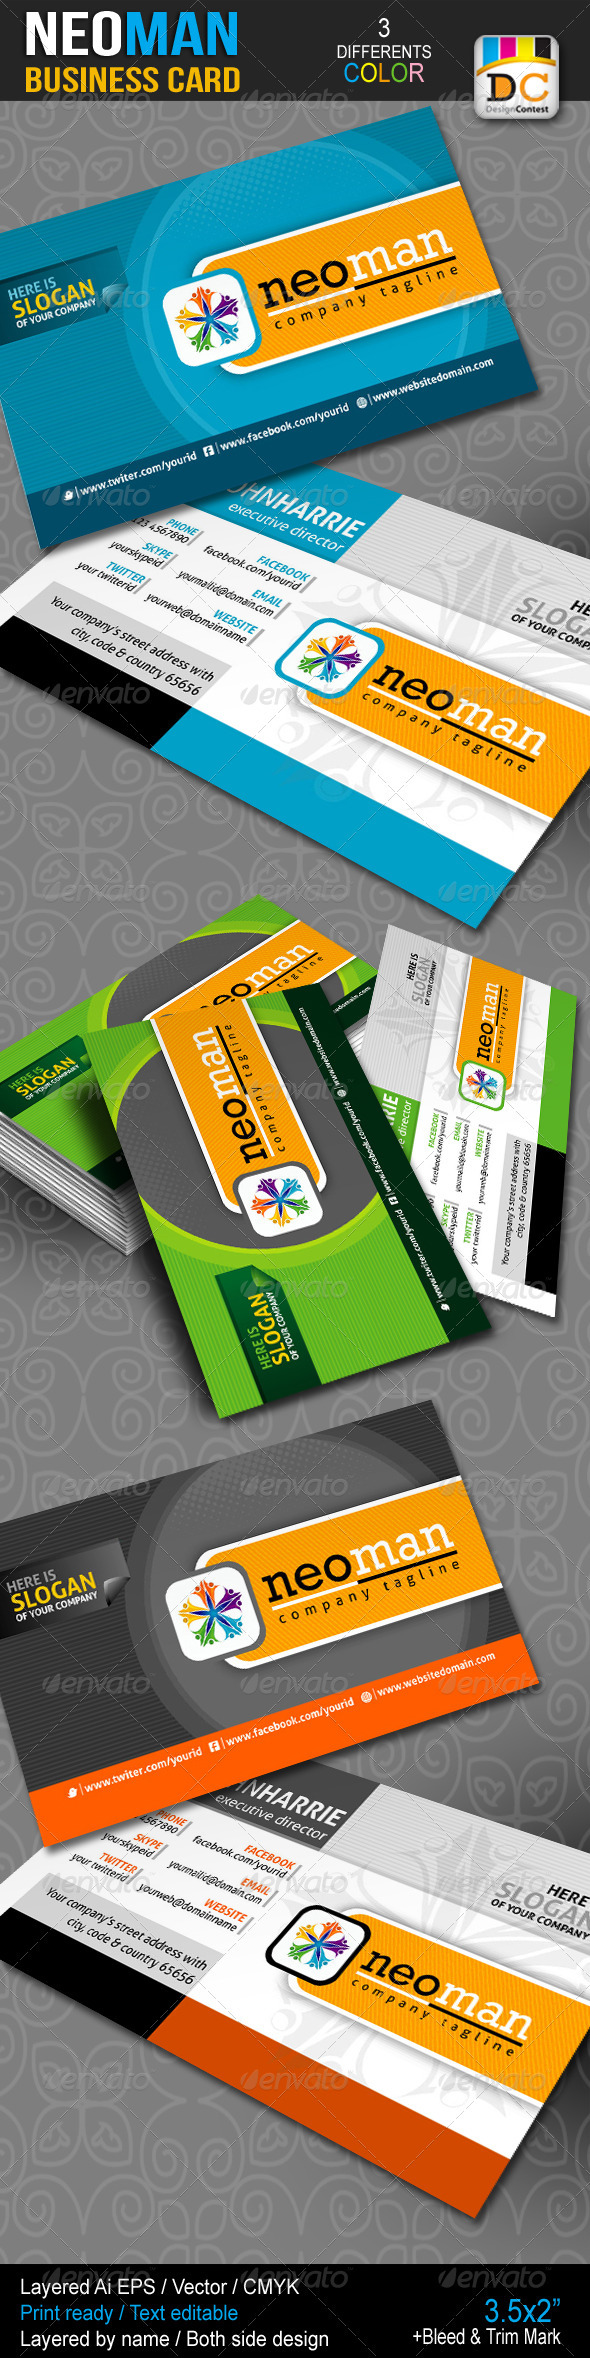 NeoMan Corporate Business Cards - Corporate Business Cards